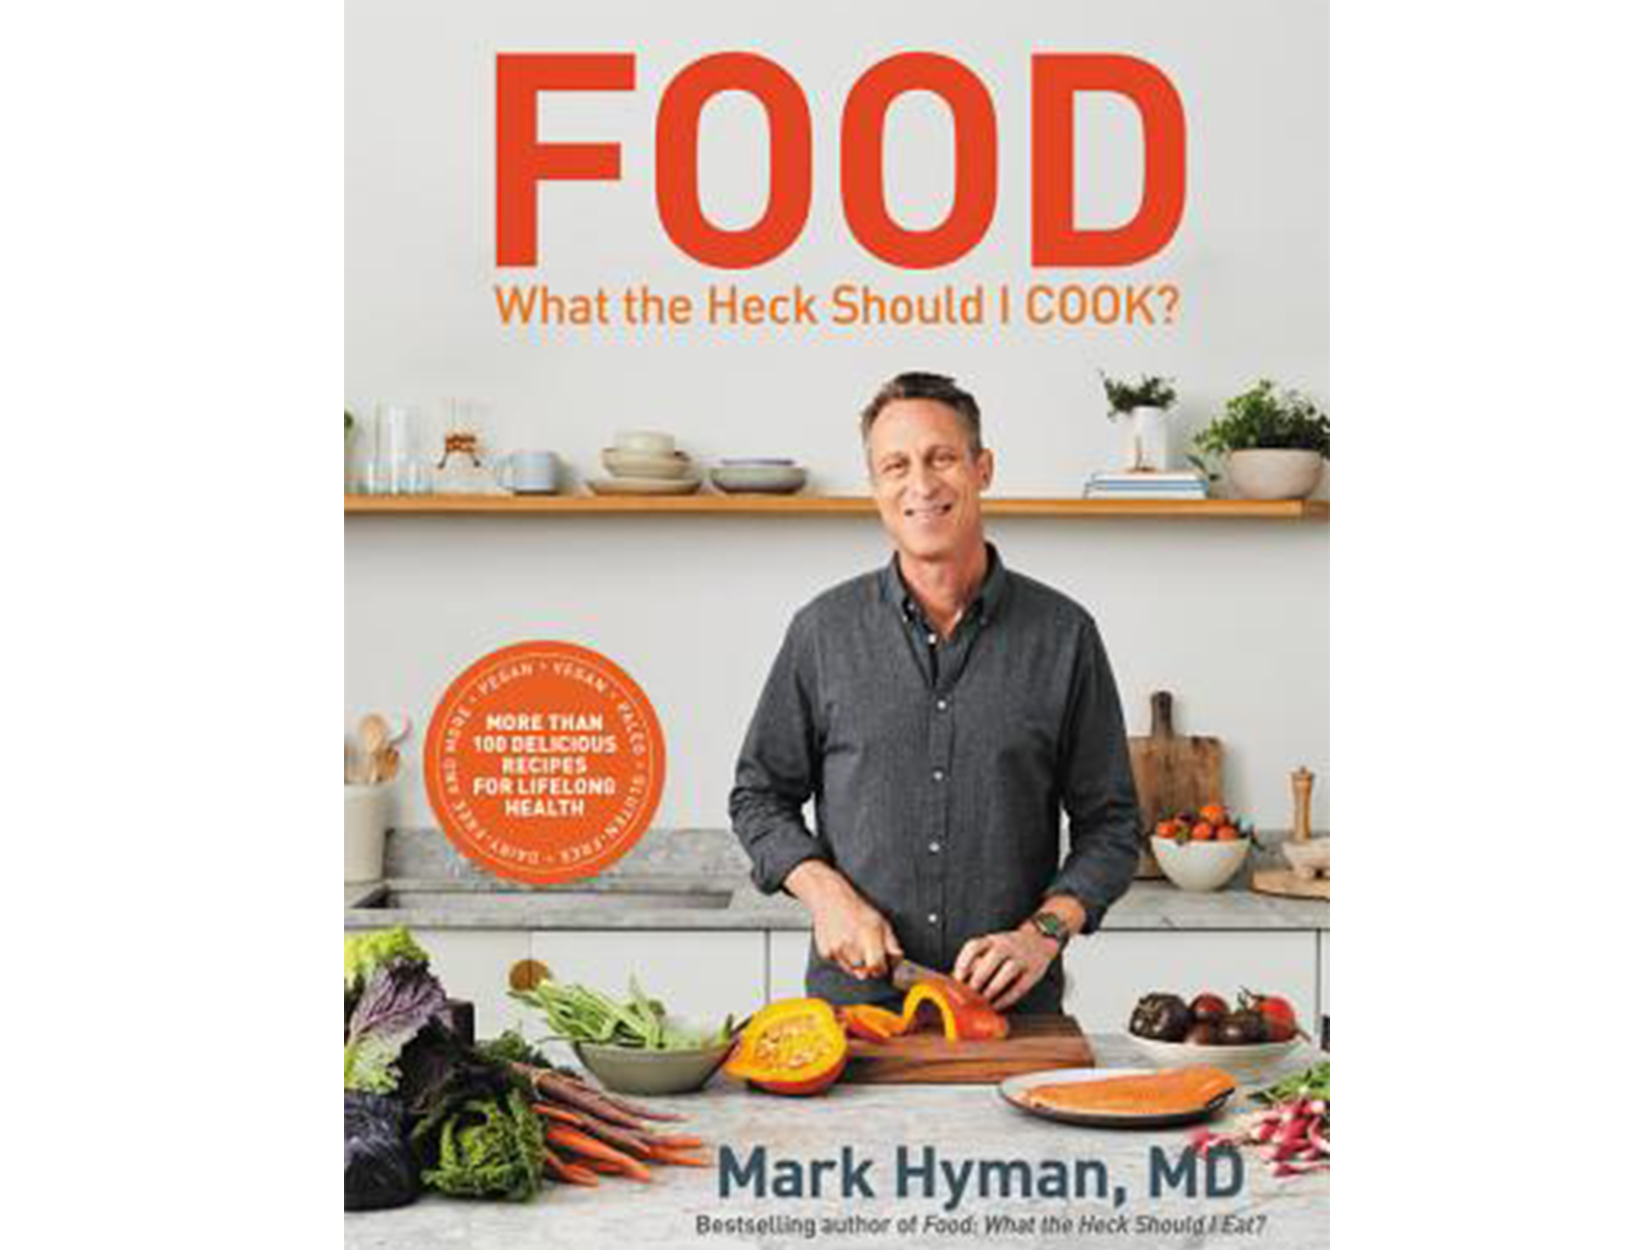 <em>What the Heck Should I Cook?</em> by Mark Hyman, MD